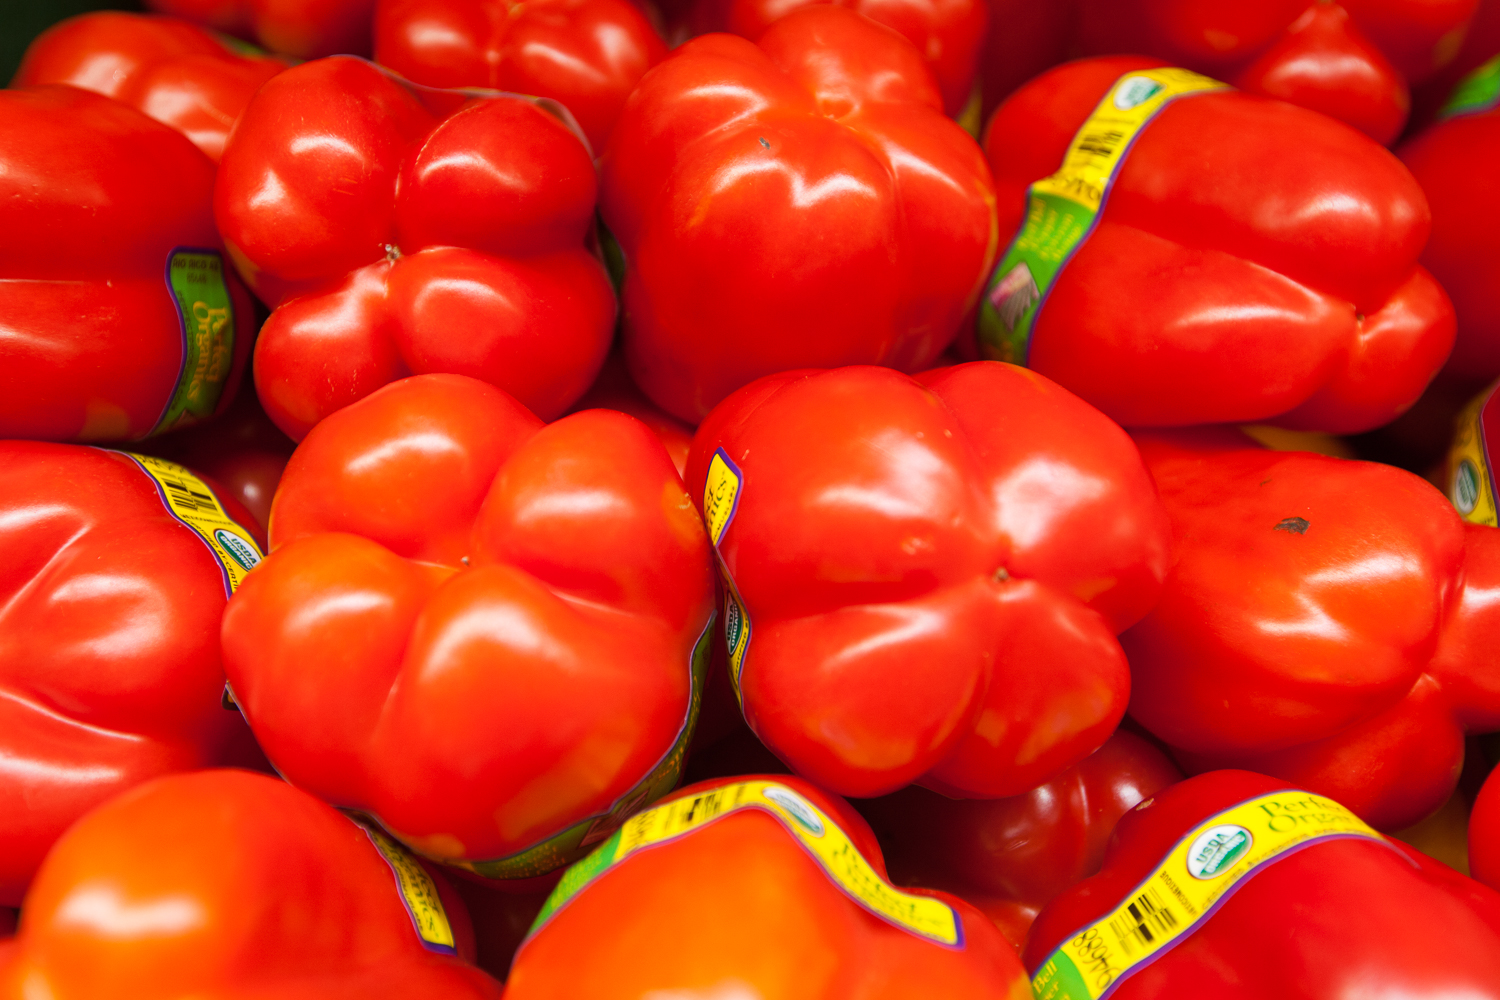 red-bell-peppers-produce-department-mana-foods.jpg